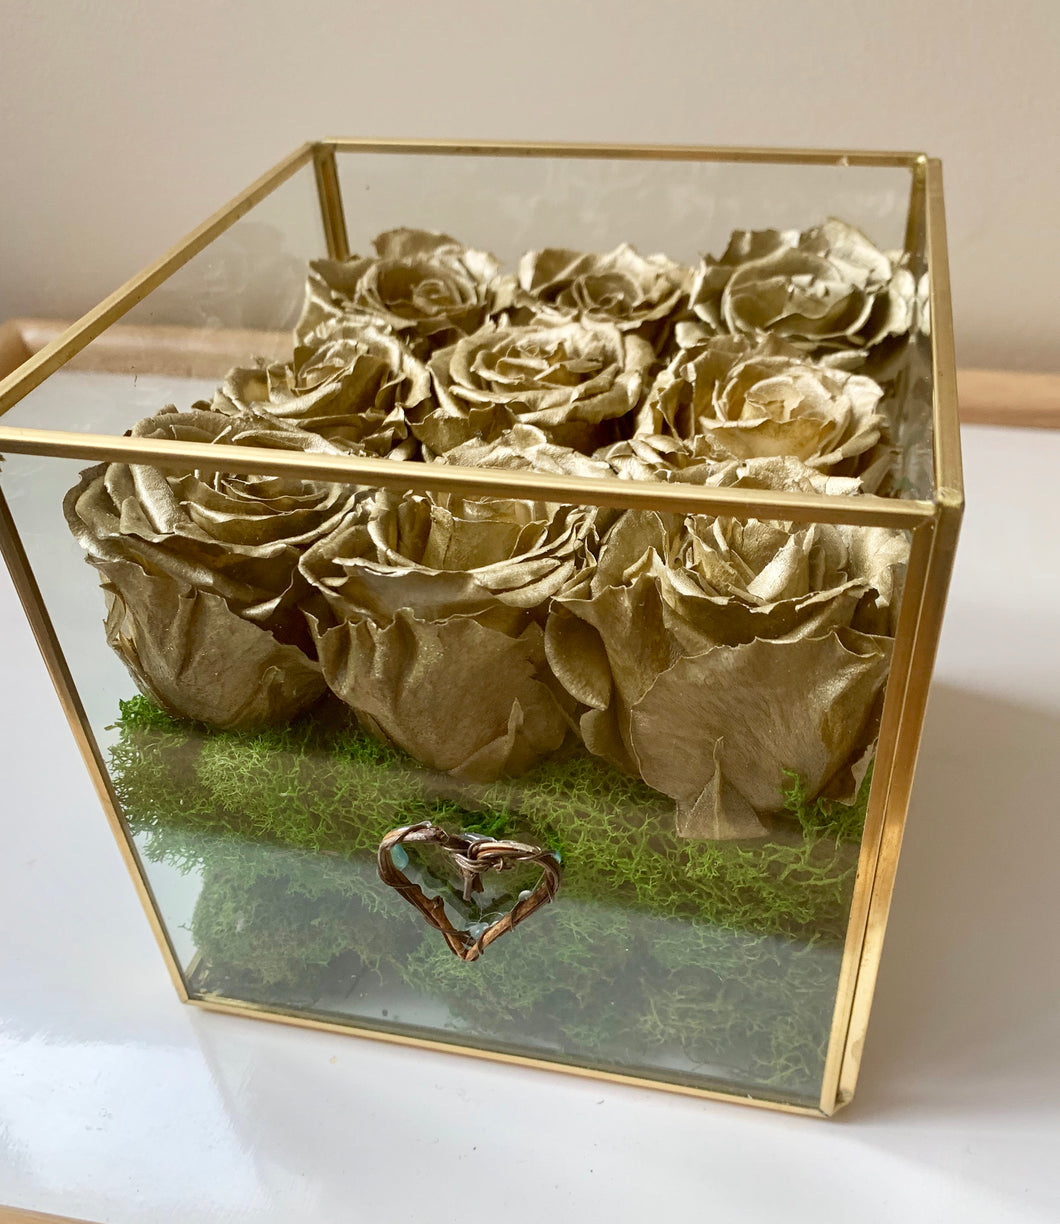 Natures 9 Cube- Gold Roses, Gold trim Glass cube